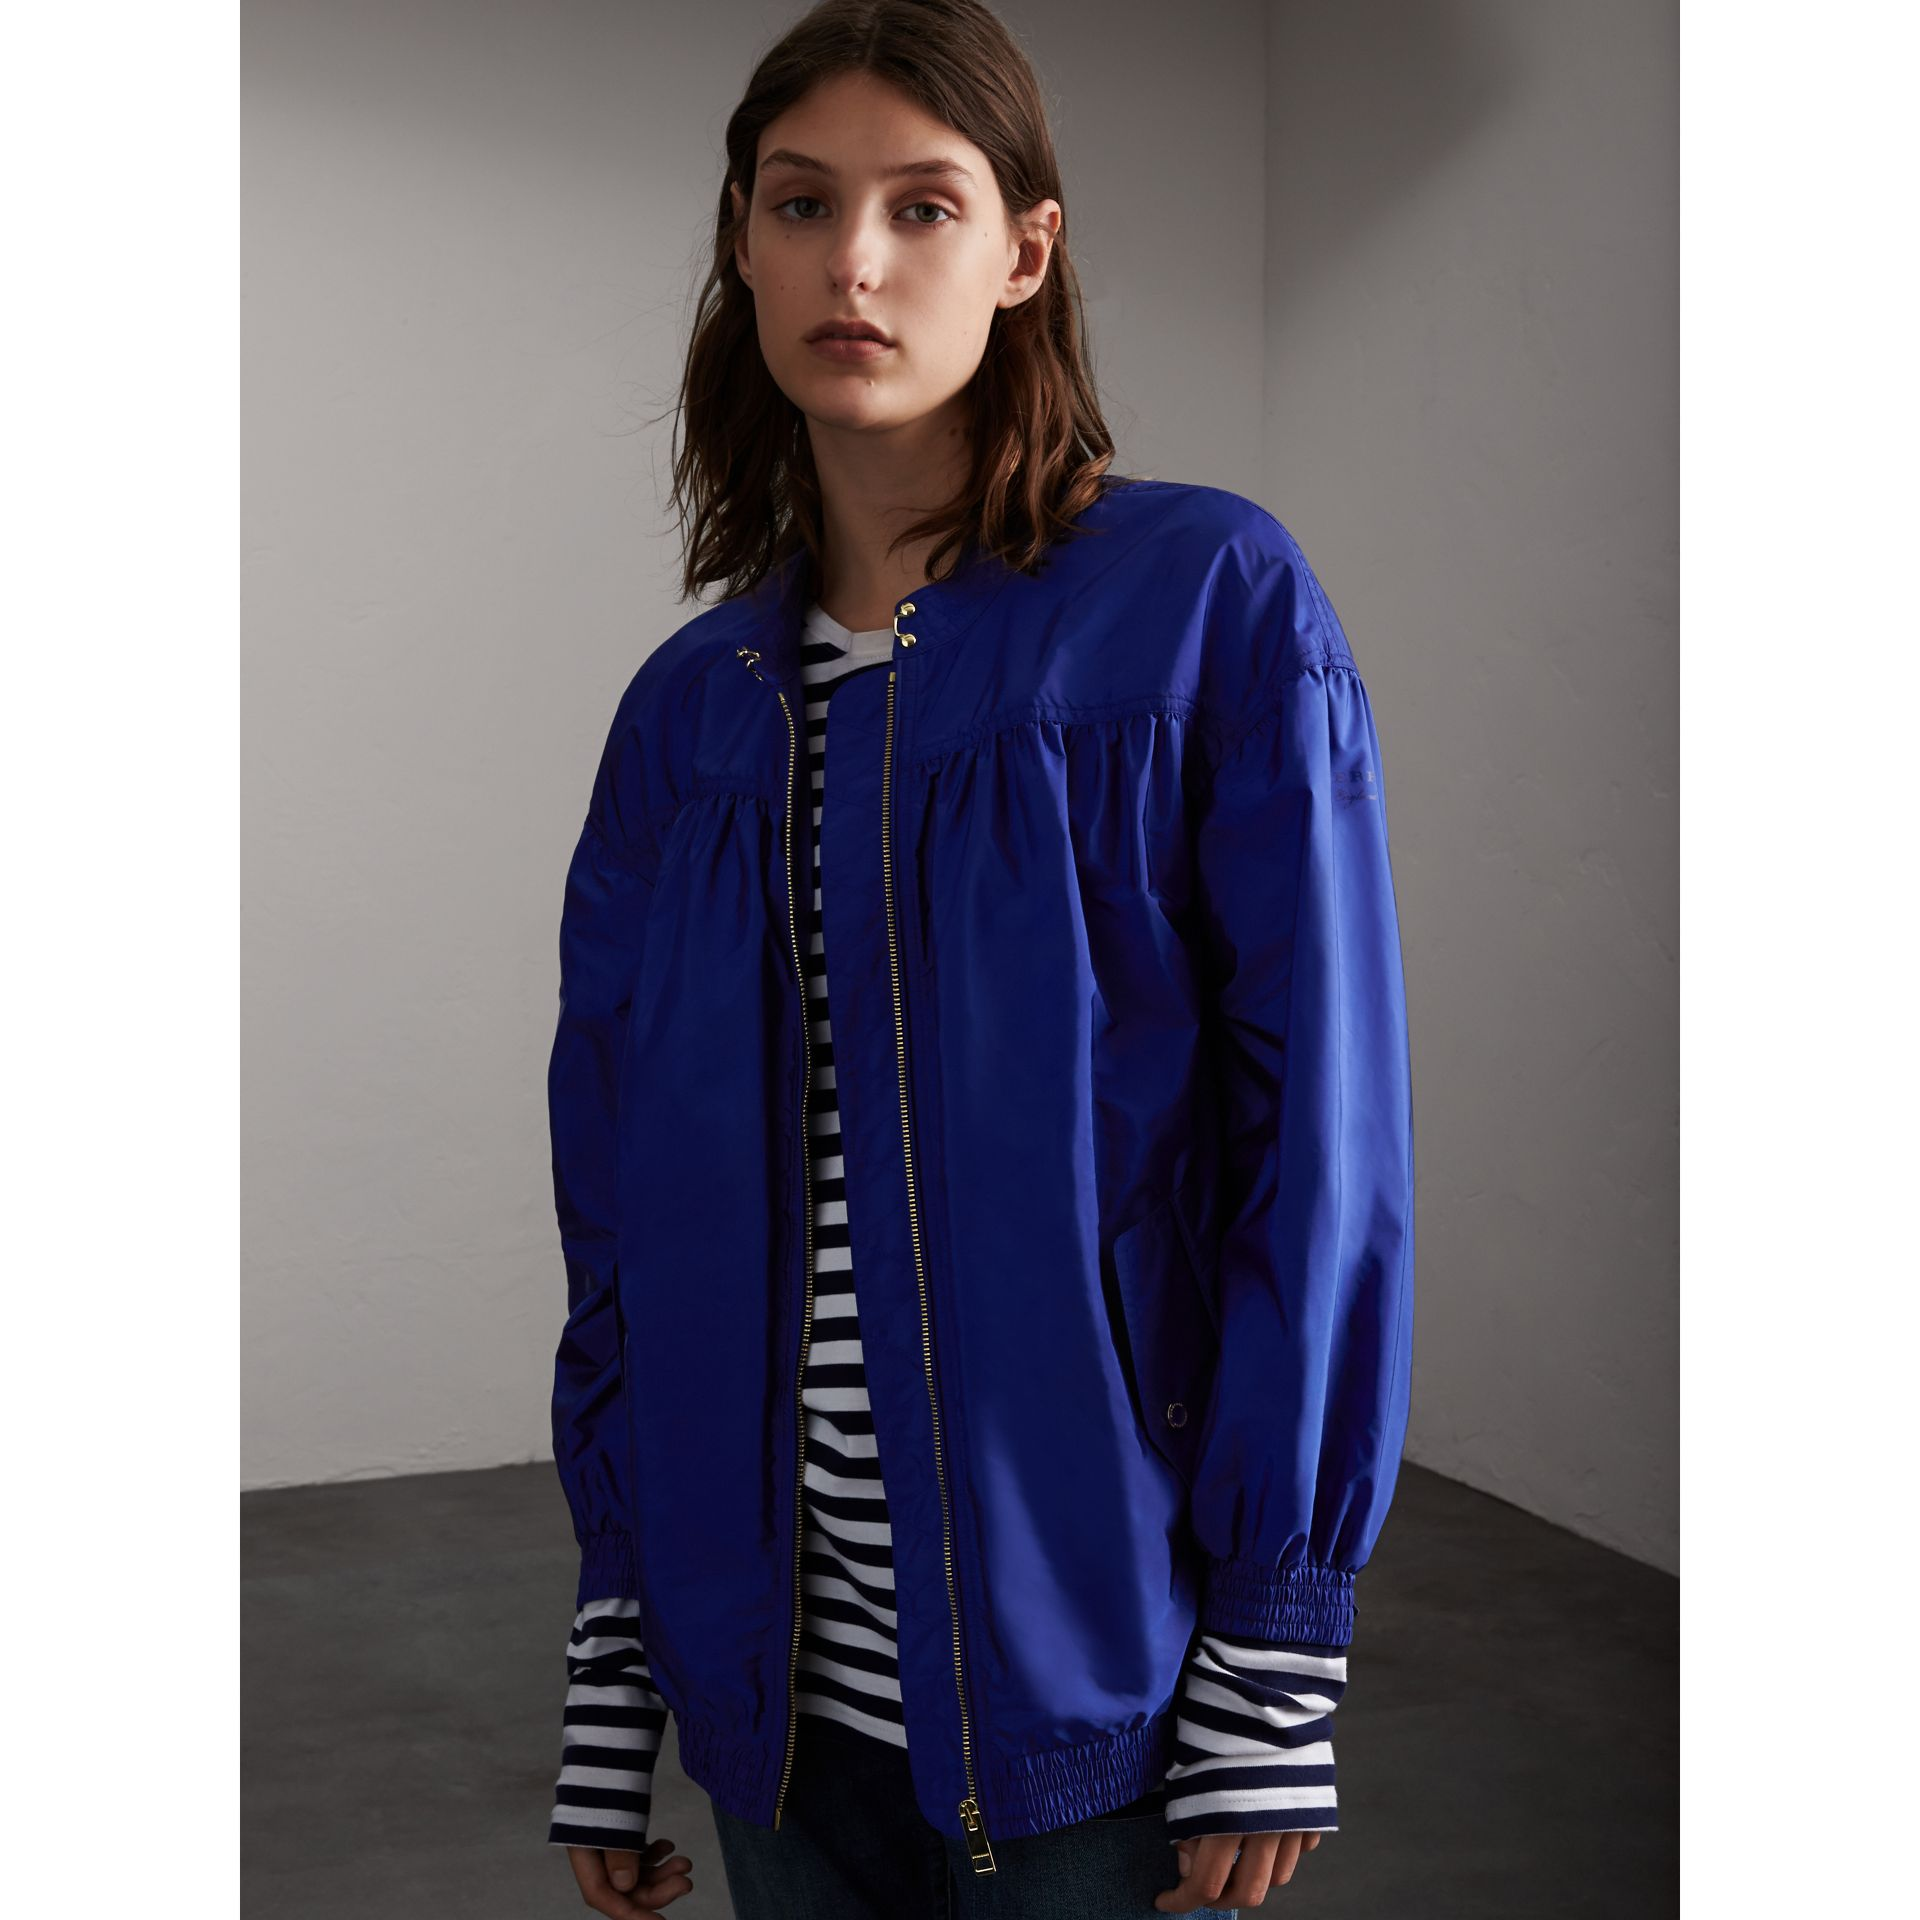 Ruched Showerproof Jacket in Sapphire Blue - Women | Burberry - gallery image 1